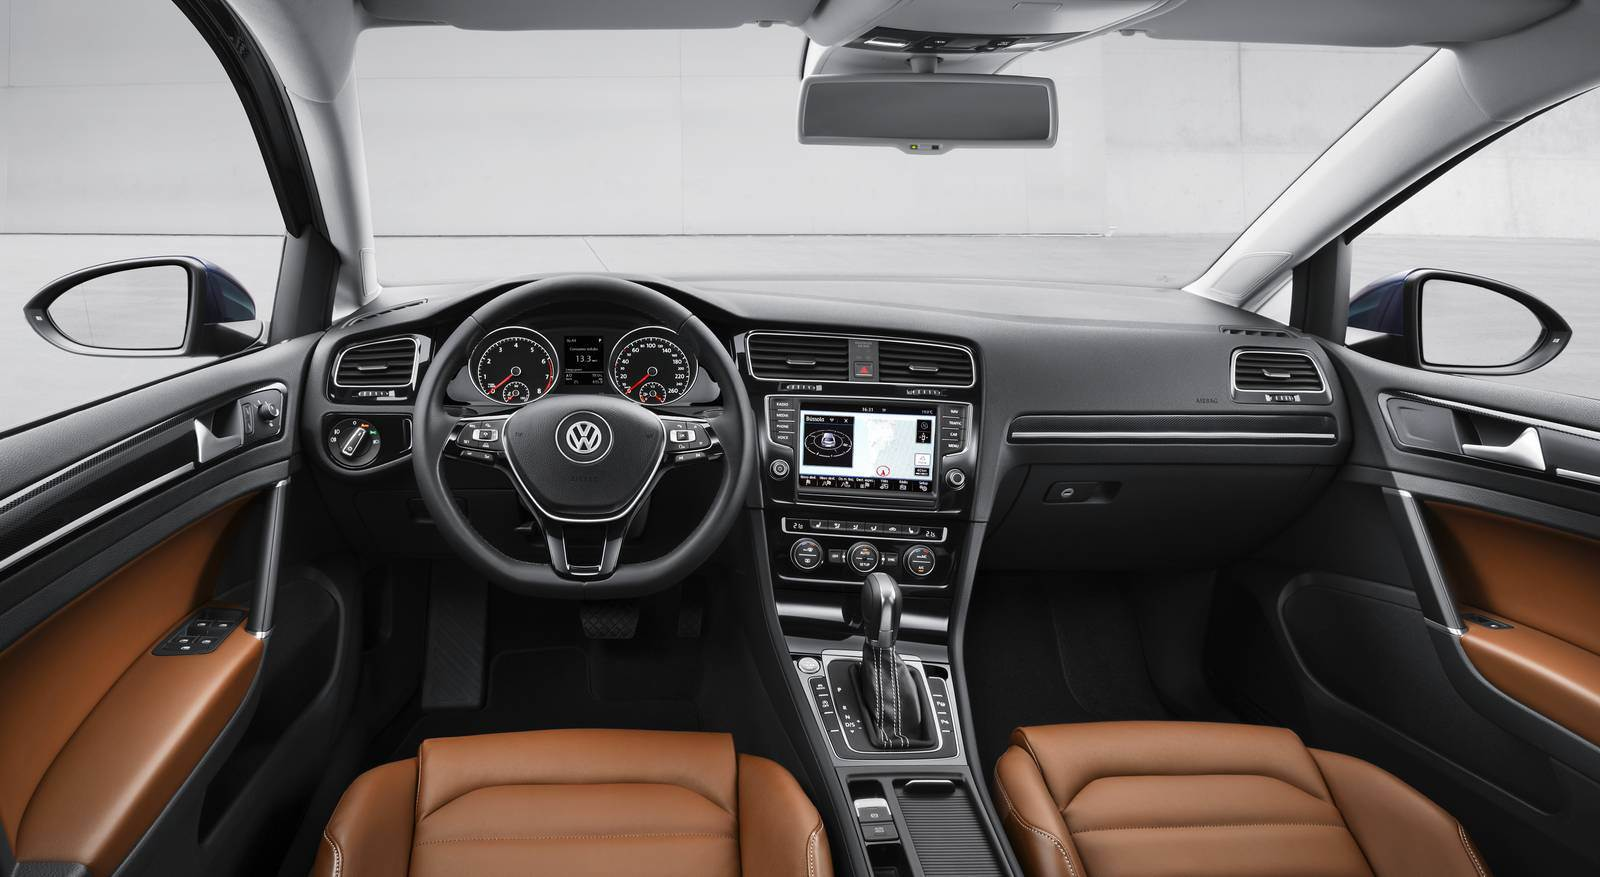 VW Golf 2013 - interior